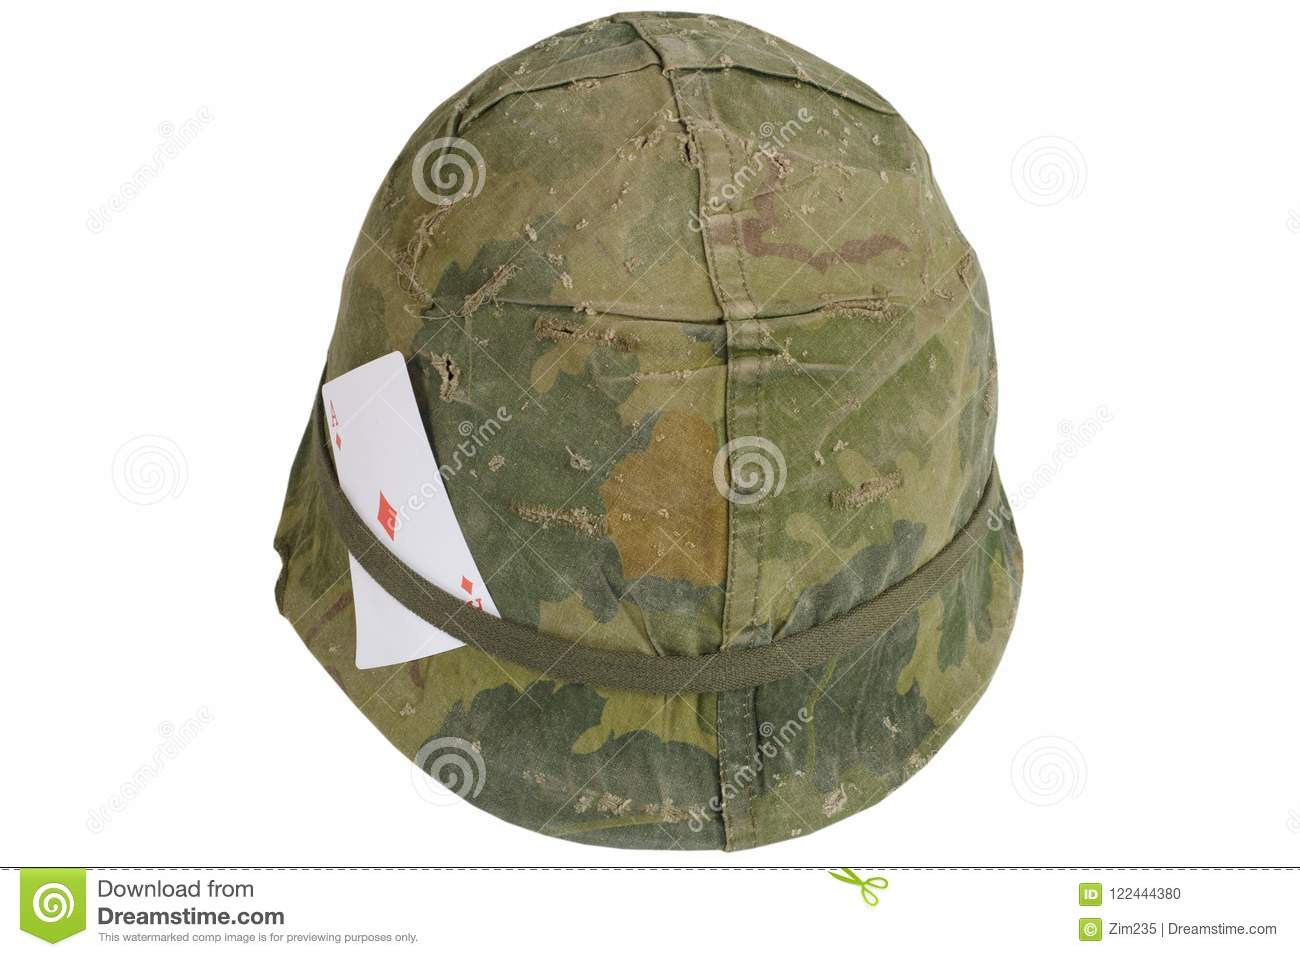 e31ddf00 US Army helmet Vietnam war period with amulet - playing card ace of diamonds